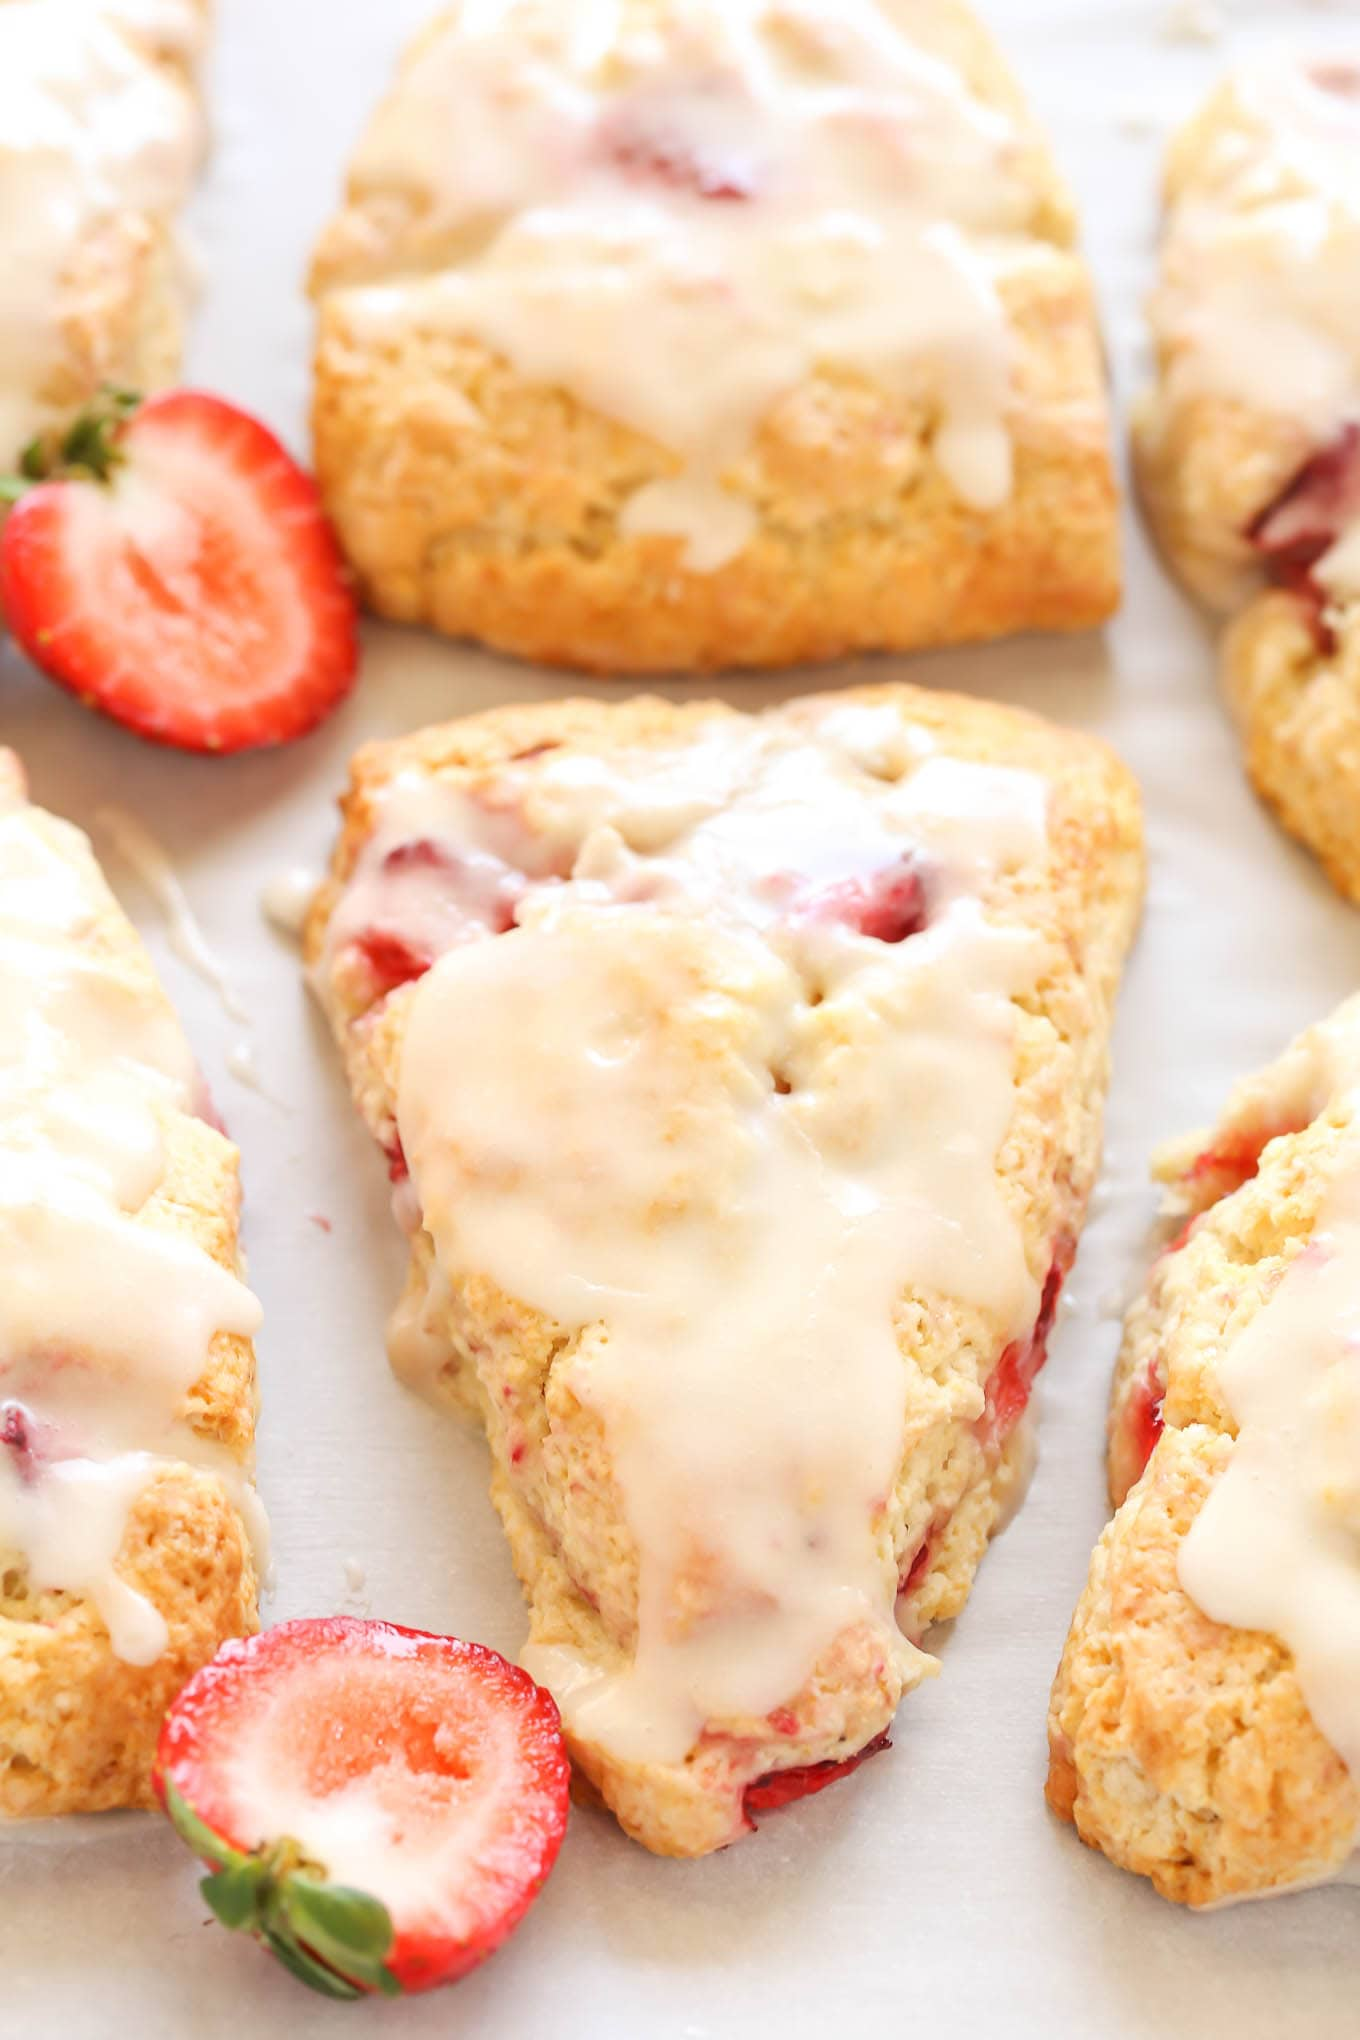 Six strawberry scones topped with glaze. Two strawberry halves rest between the scones.